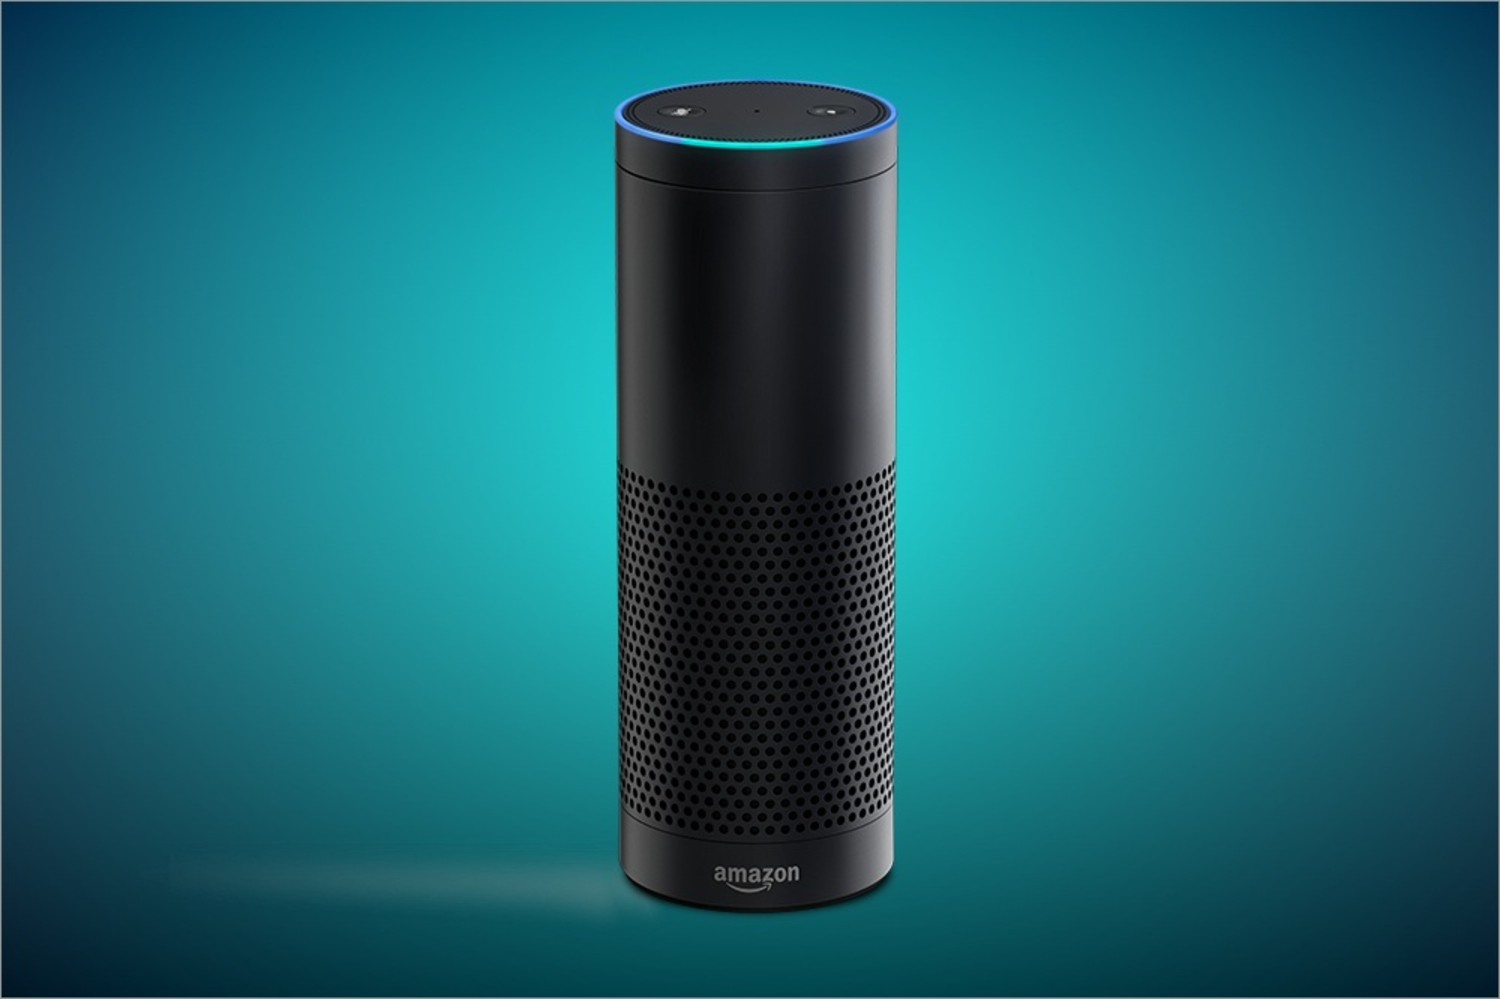 Amazon Echo Data Wanted For Murder Investigation